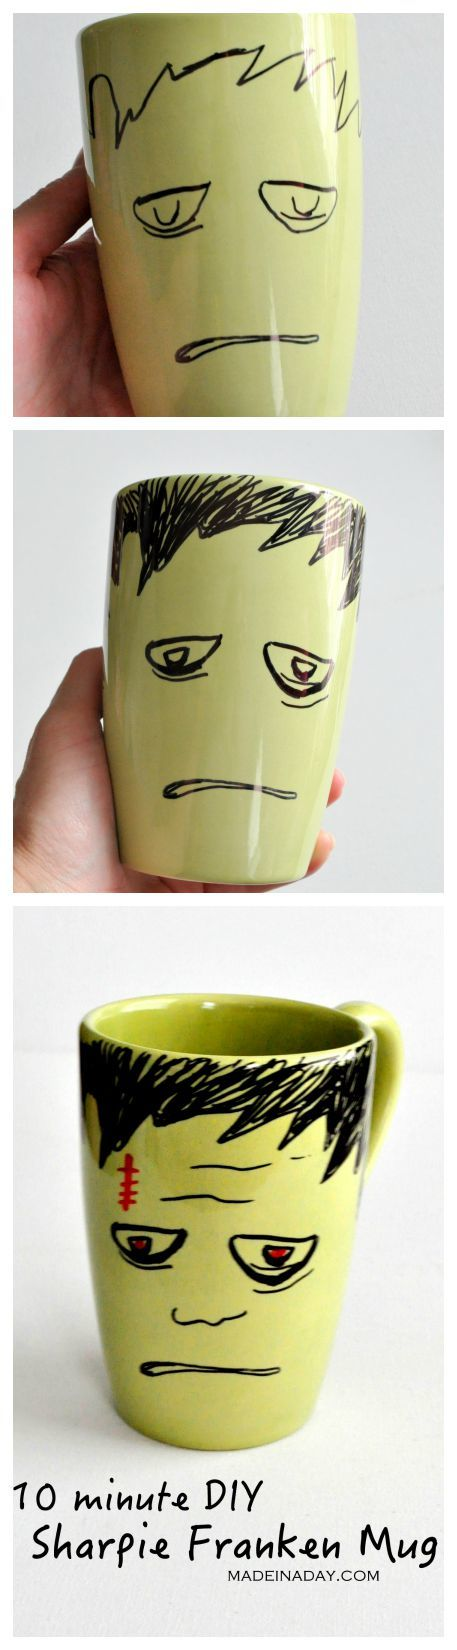 DIY Frankenstein Sharpie Mug 2